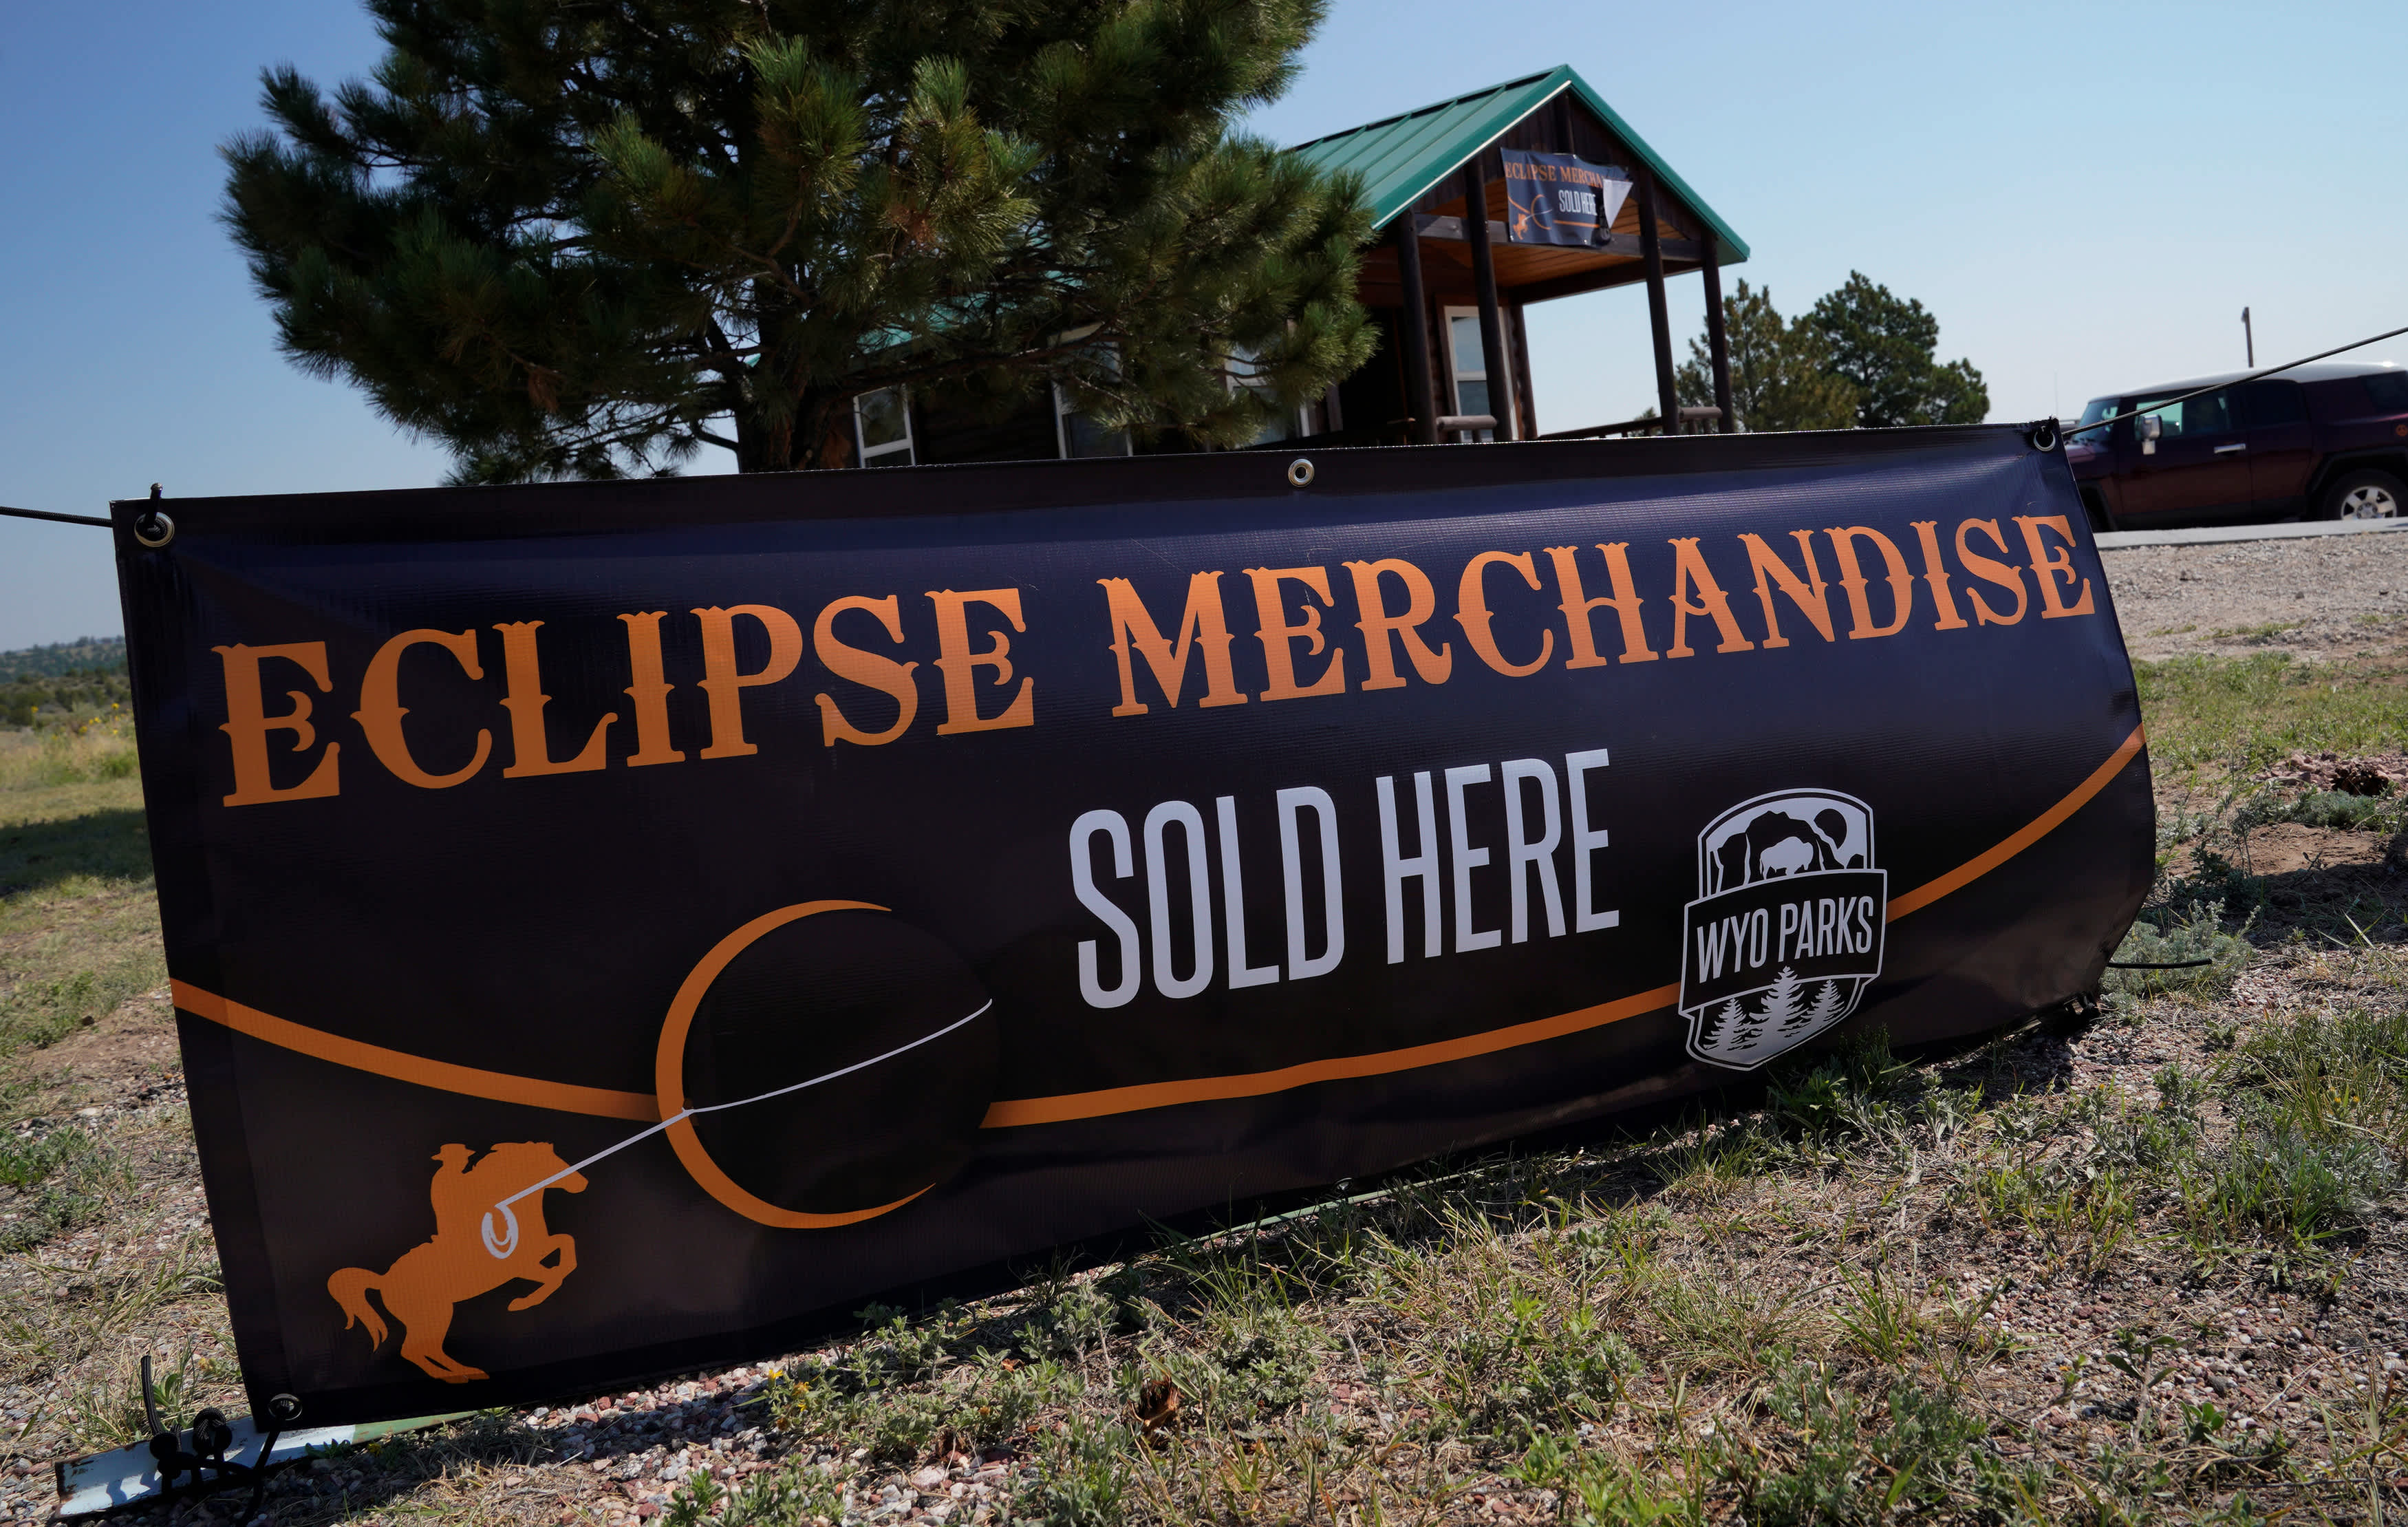 A sign advertises eclipse merchandise in Wyoming, US (Rick Wilking / Reuters)